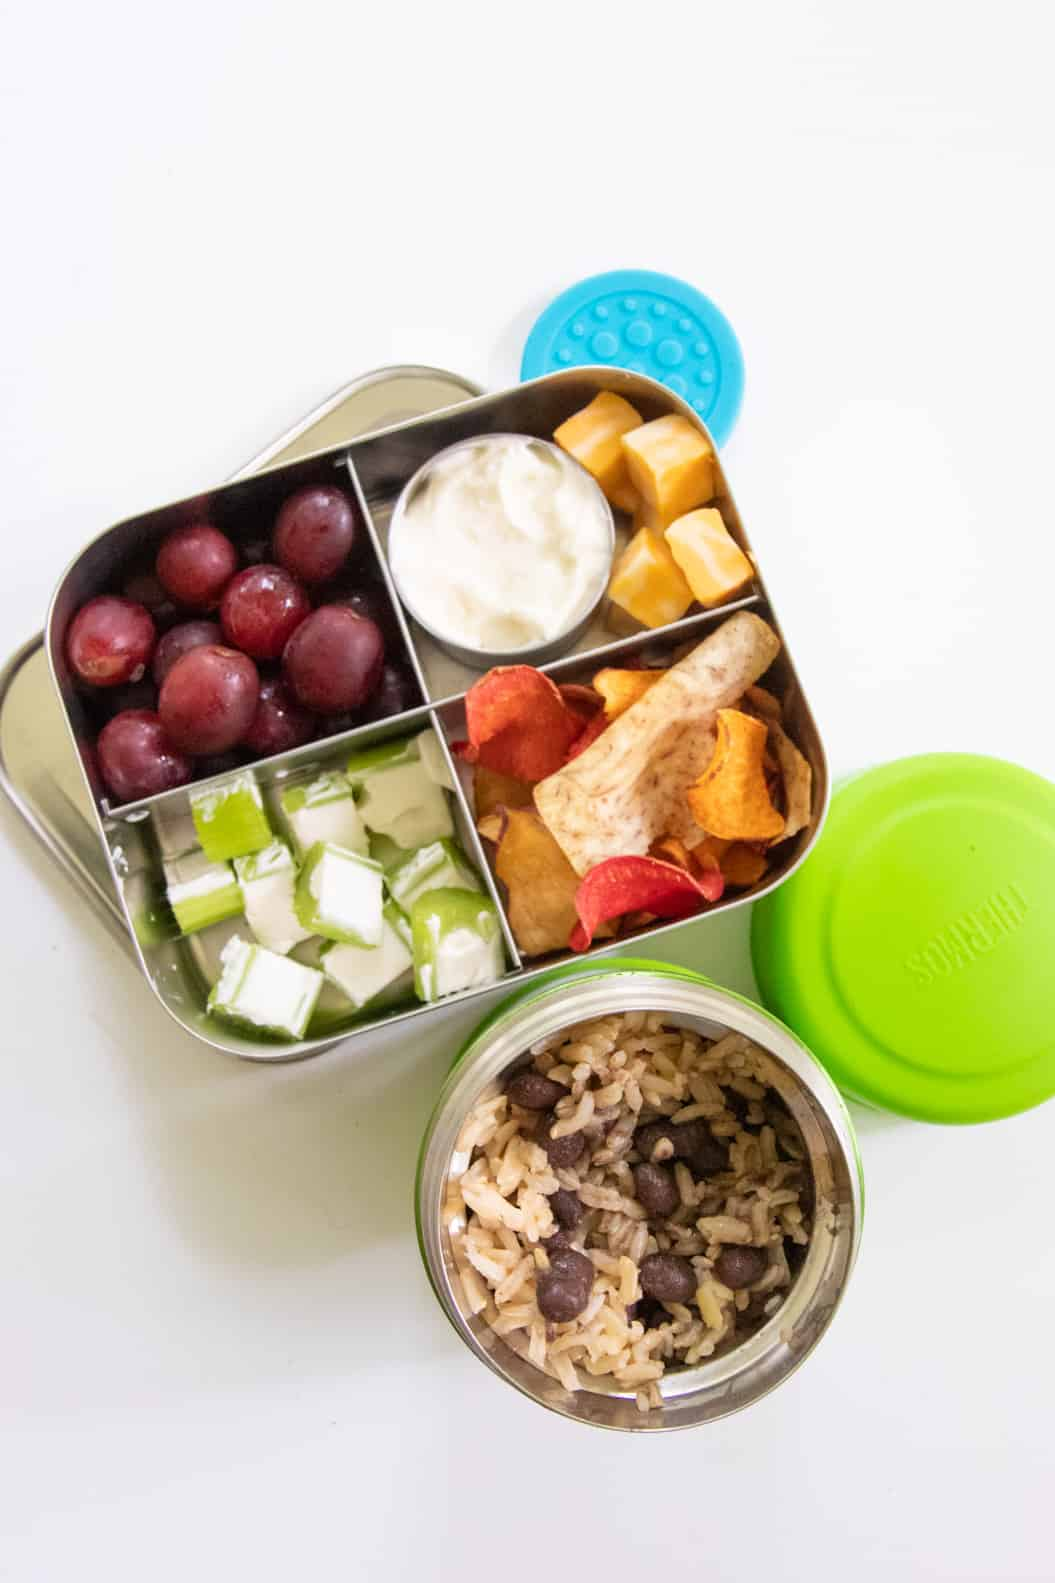 Stainless steel lunch box with grapes, cheese, ants on a log, and veggie chips, next to a Thermos of rice and beans